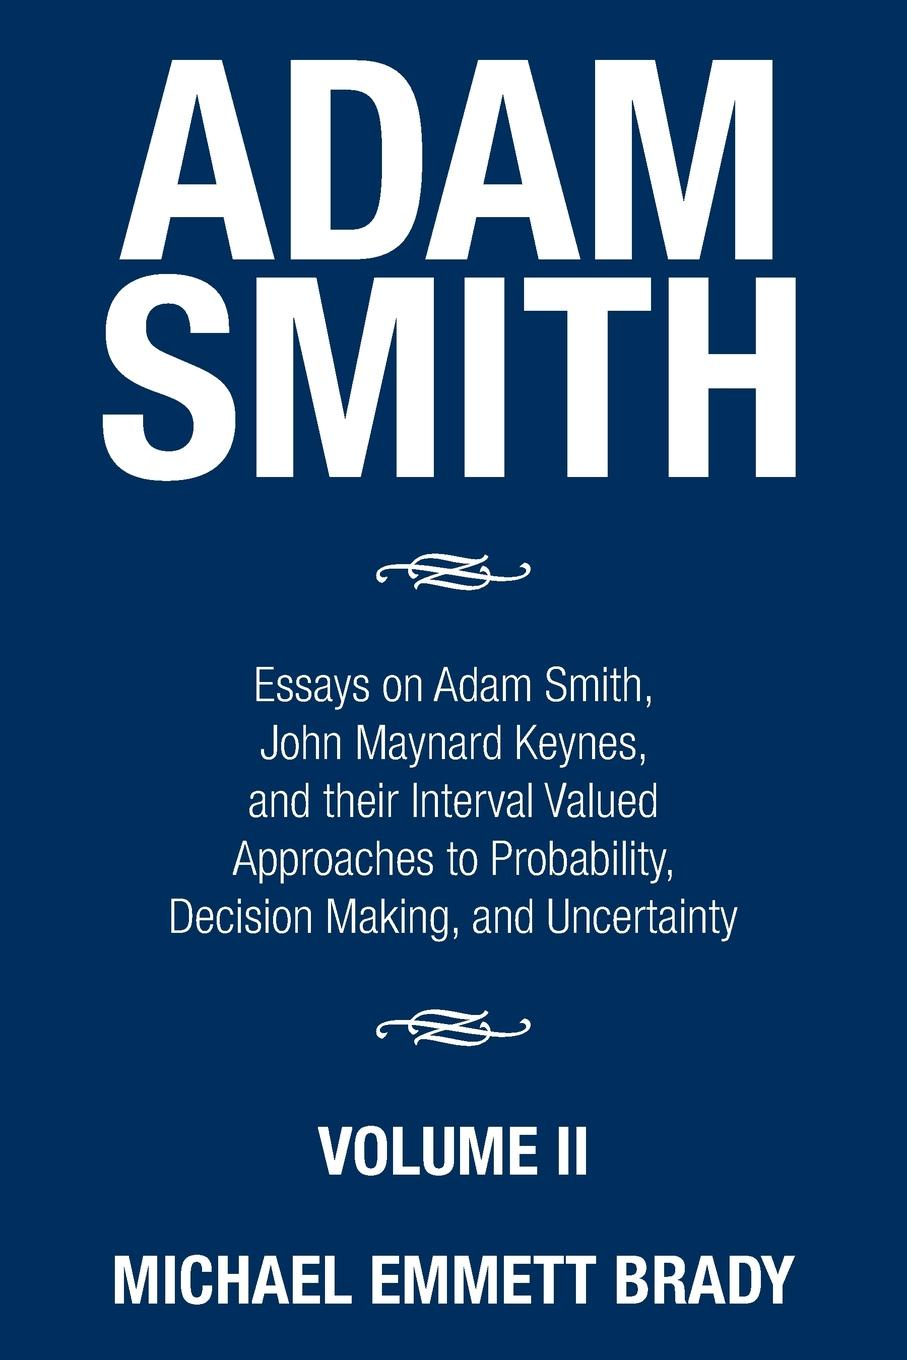 Michael Emmett Brady Adam Smith. Essays on Adam Smith, John Maynard Keynes, and their Interval Valued Approaches to Probability, Decision Making, and Uncertainty lina laubisch debate about alternative monetary systems silvio gesell john maynard keynes irving fisher